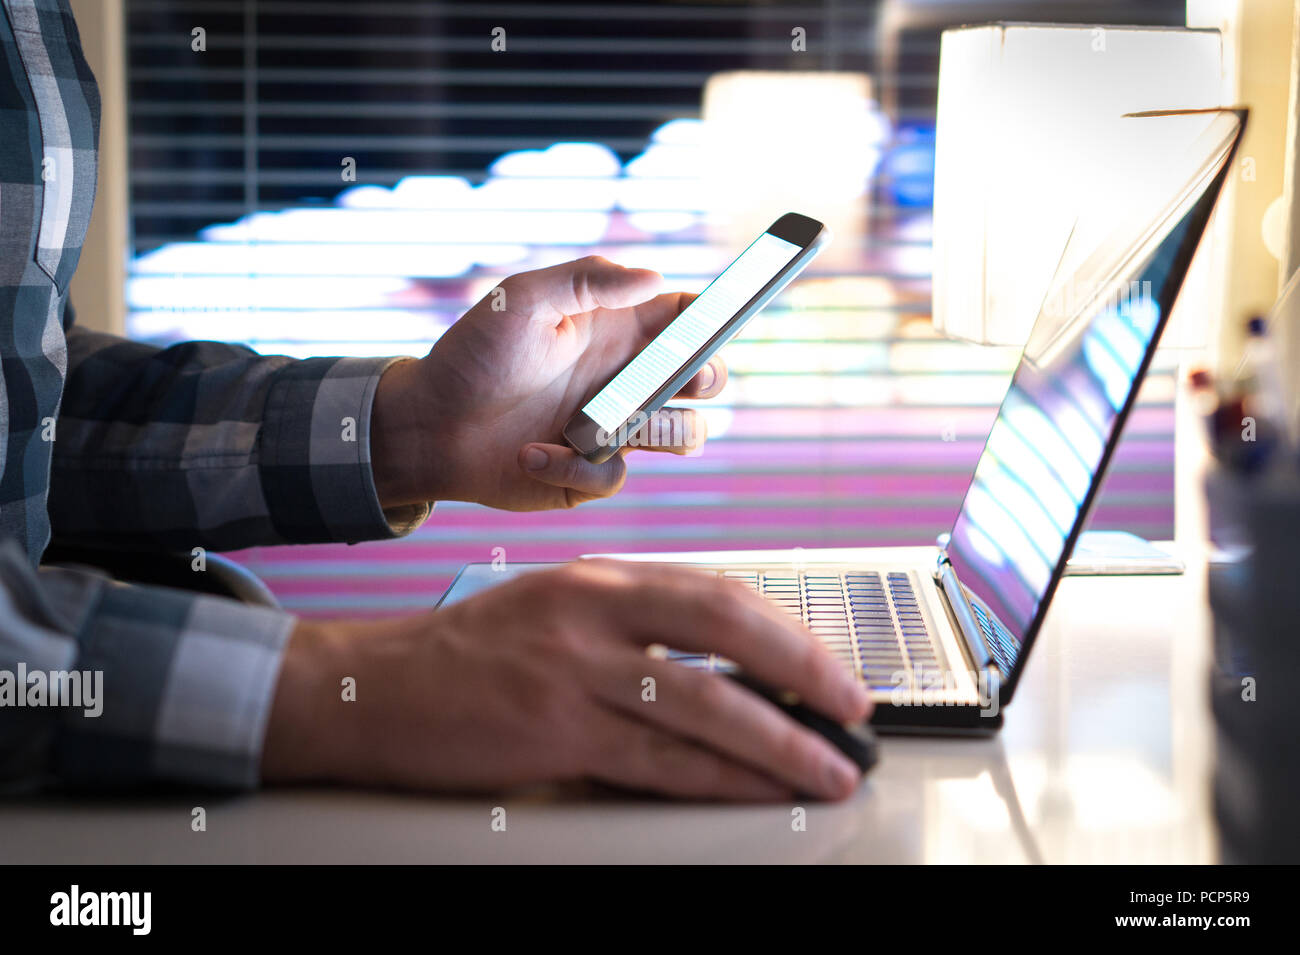 Man using smartphone and laptop late at night. Entrepreneur or businessman in modern work office. City lights in the background. - Stock Image